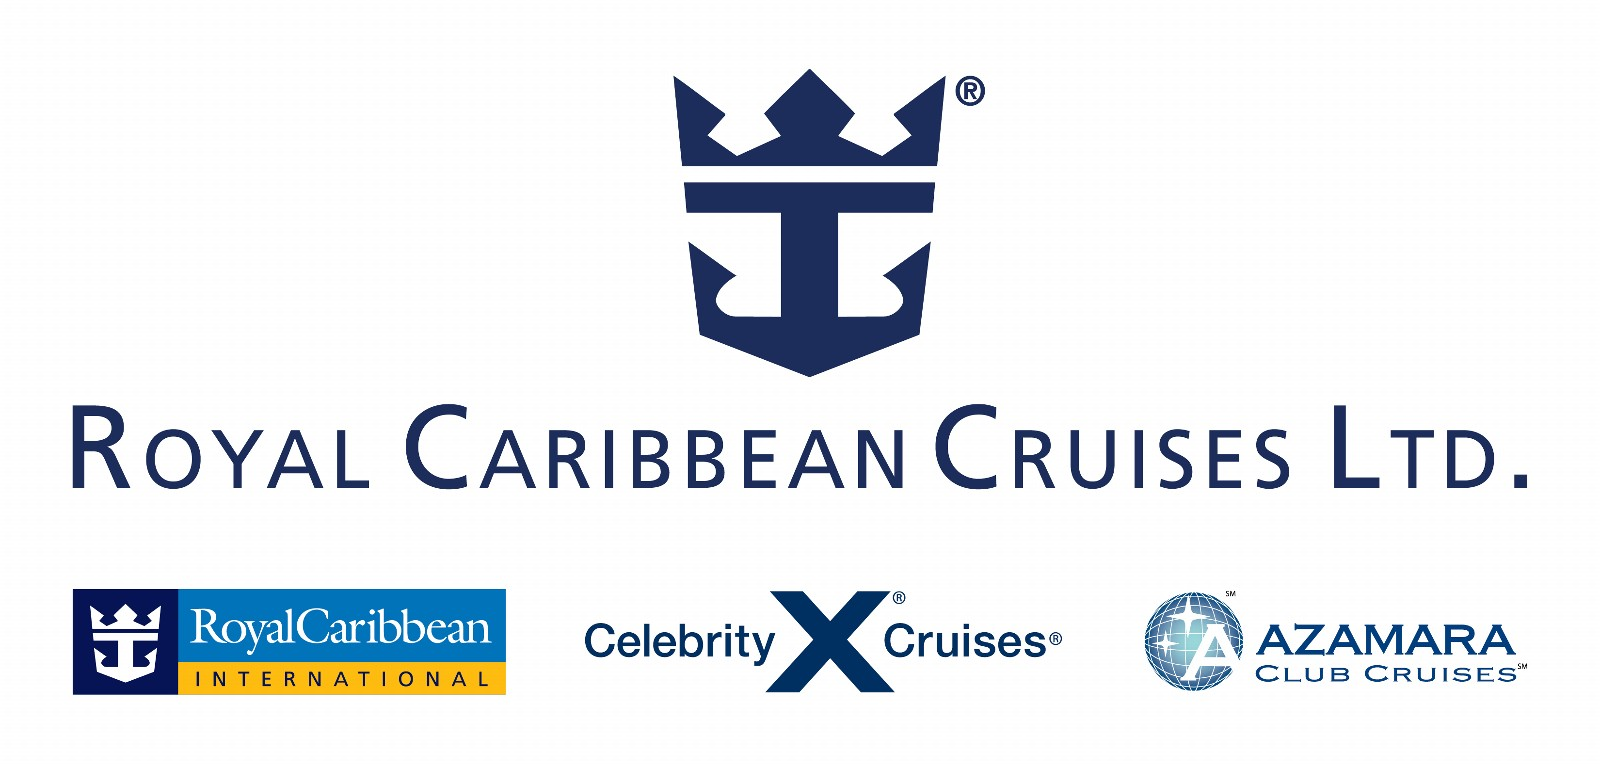 Royal Caribbean Hurricane Irma Maria Relief